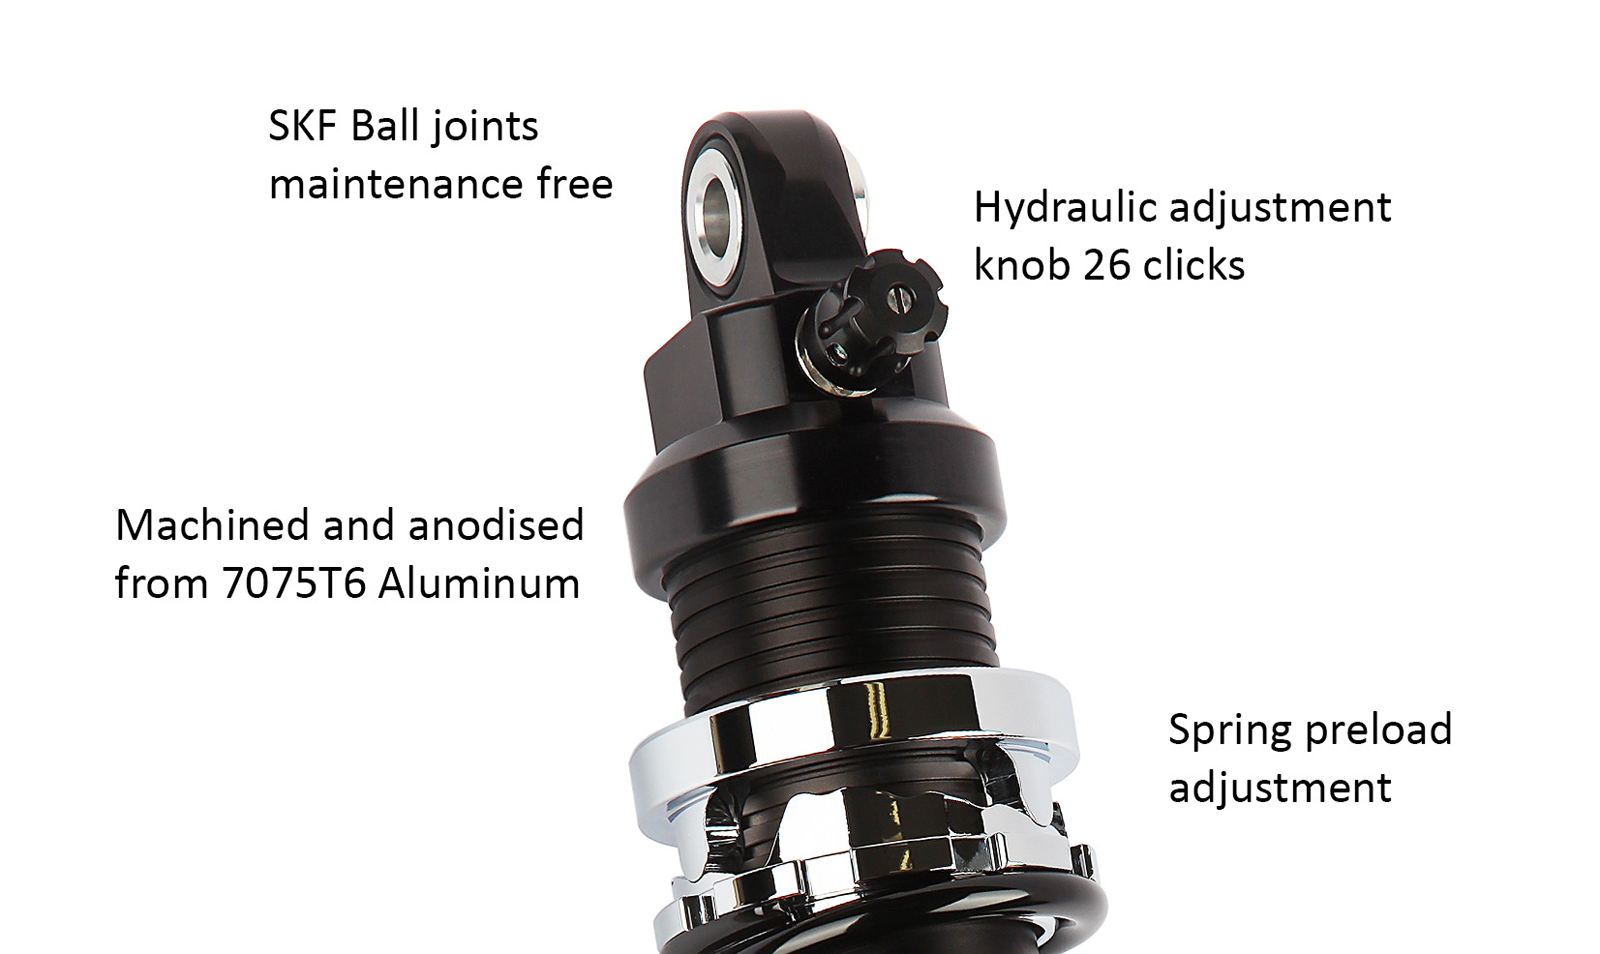 Details - Black and Chrome shock absorber